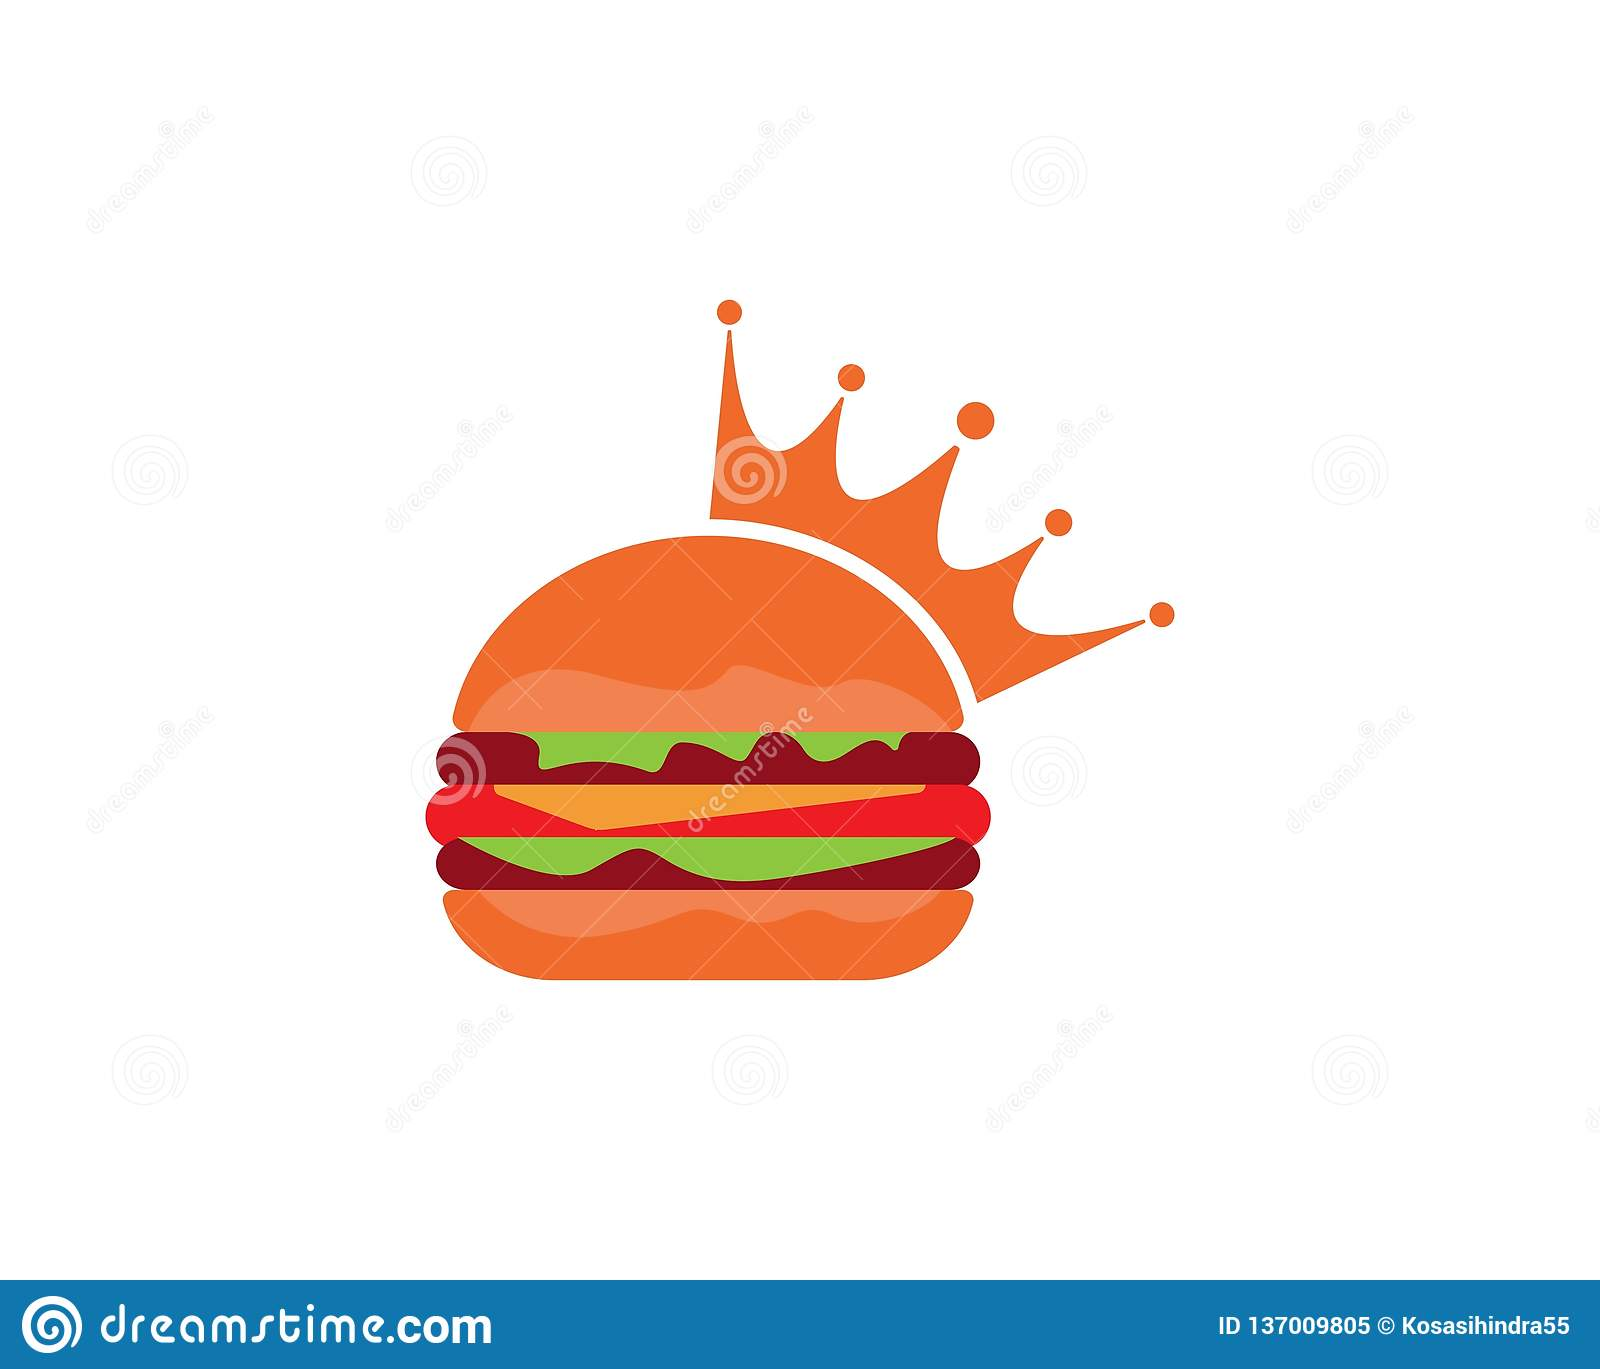 Burger logo vector icon